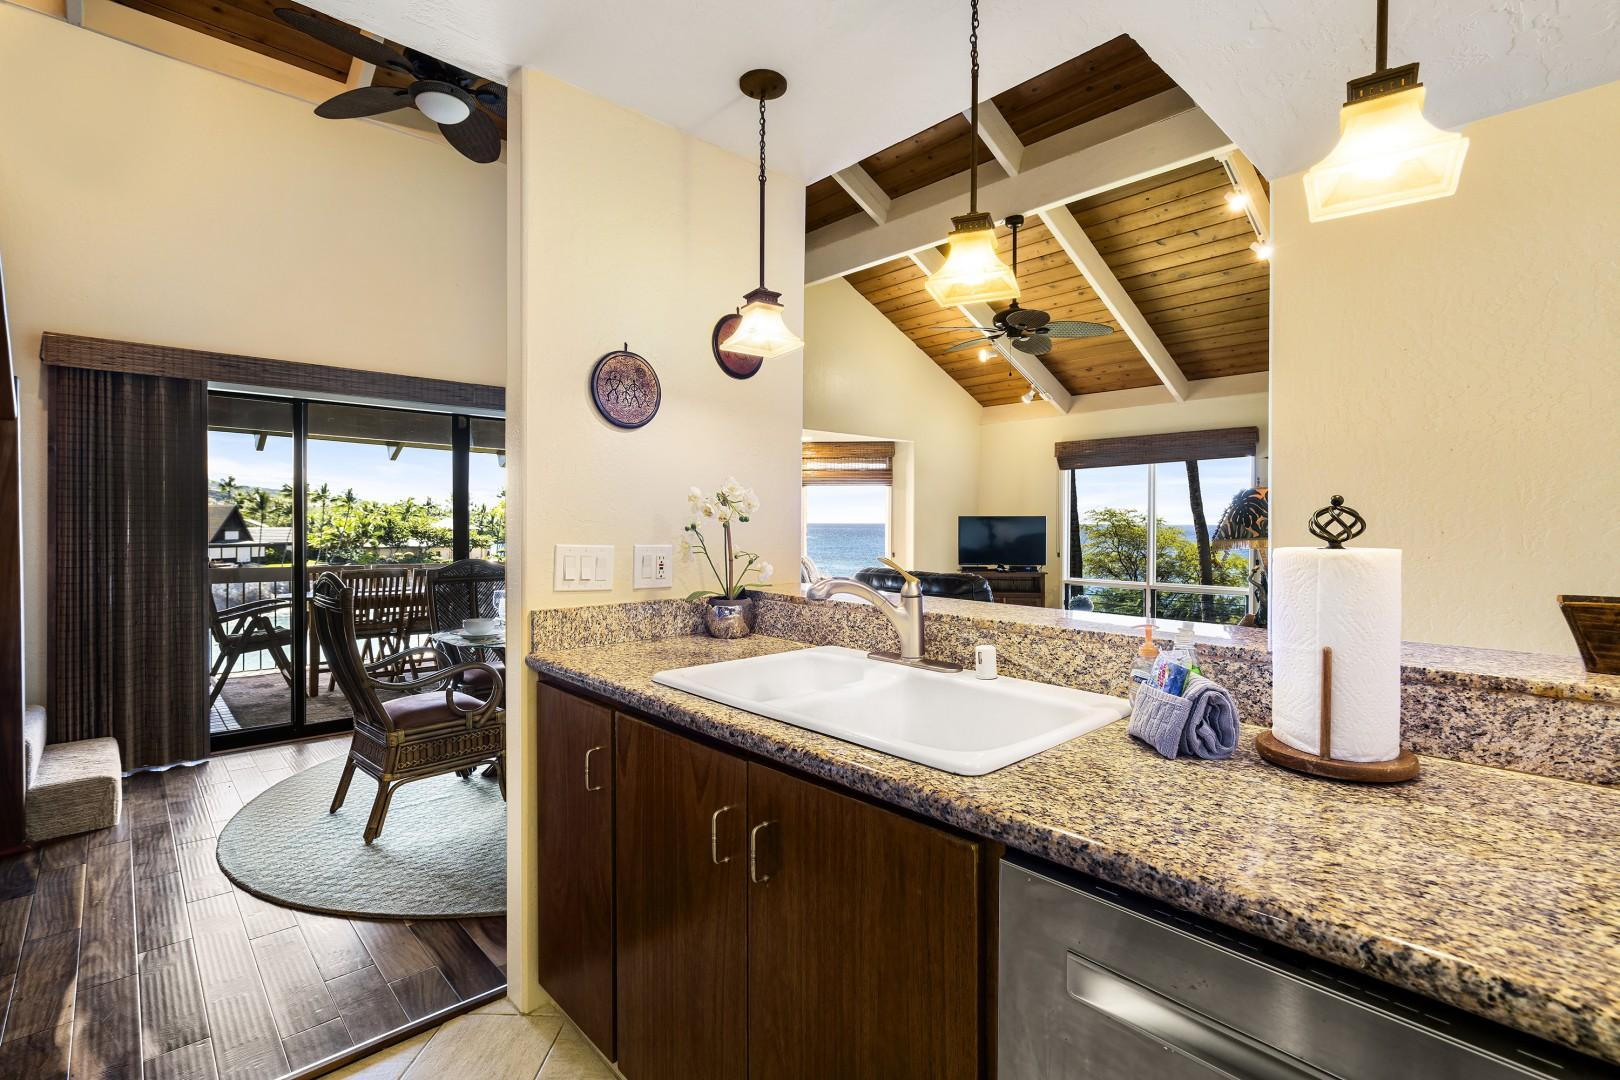 The whole group can be a part of conversation from this open style kitchen